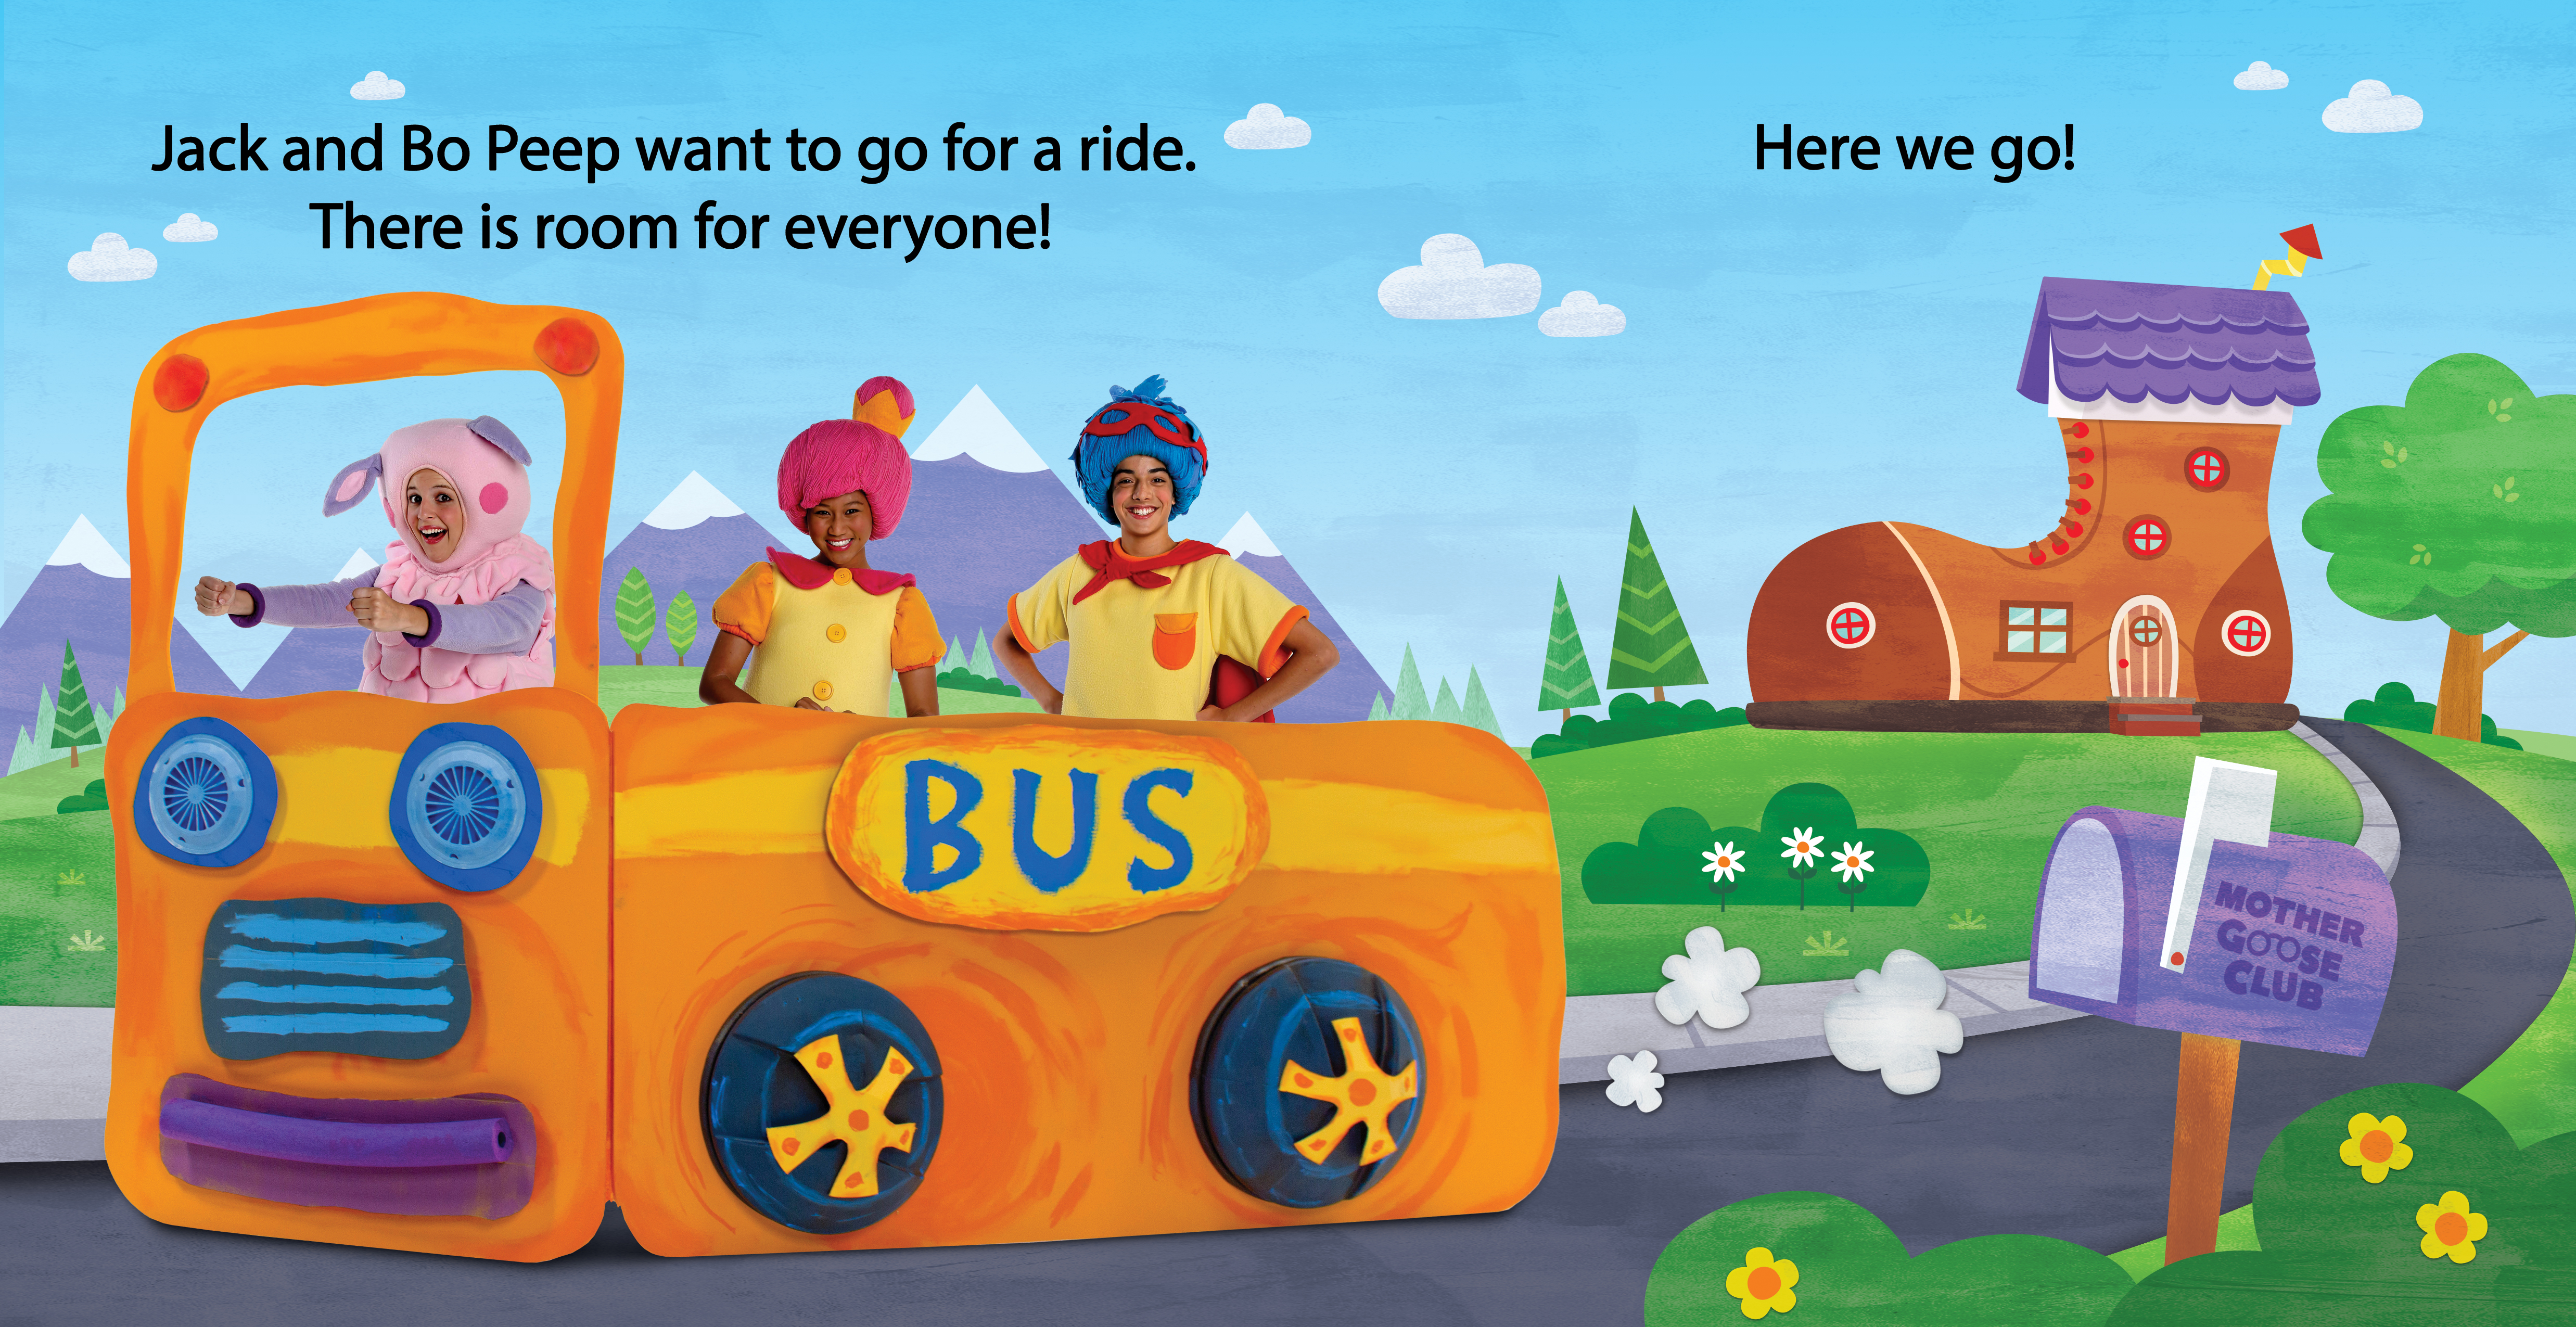 The Wheels on the Bus book spread